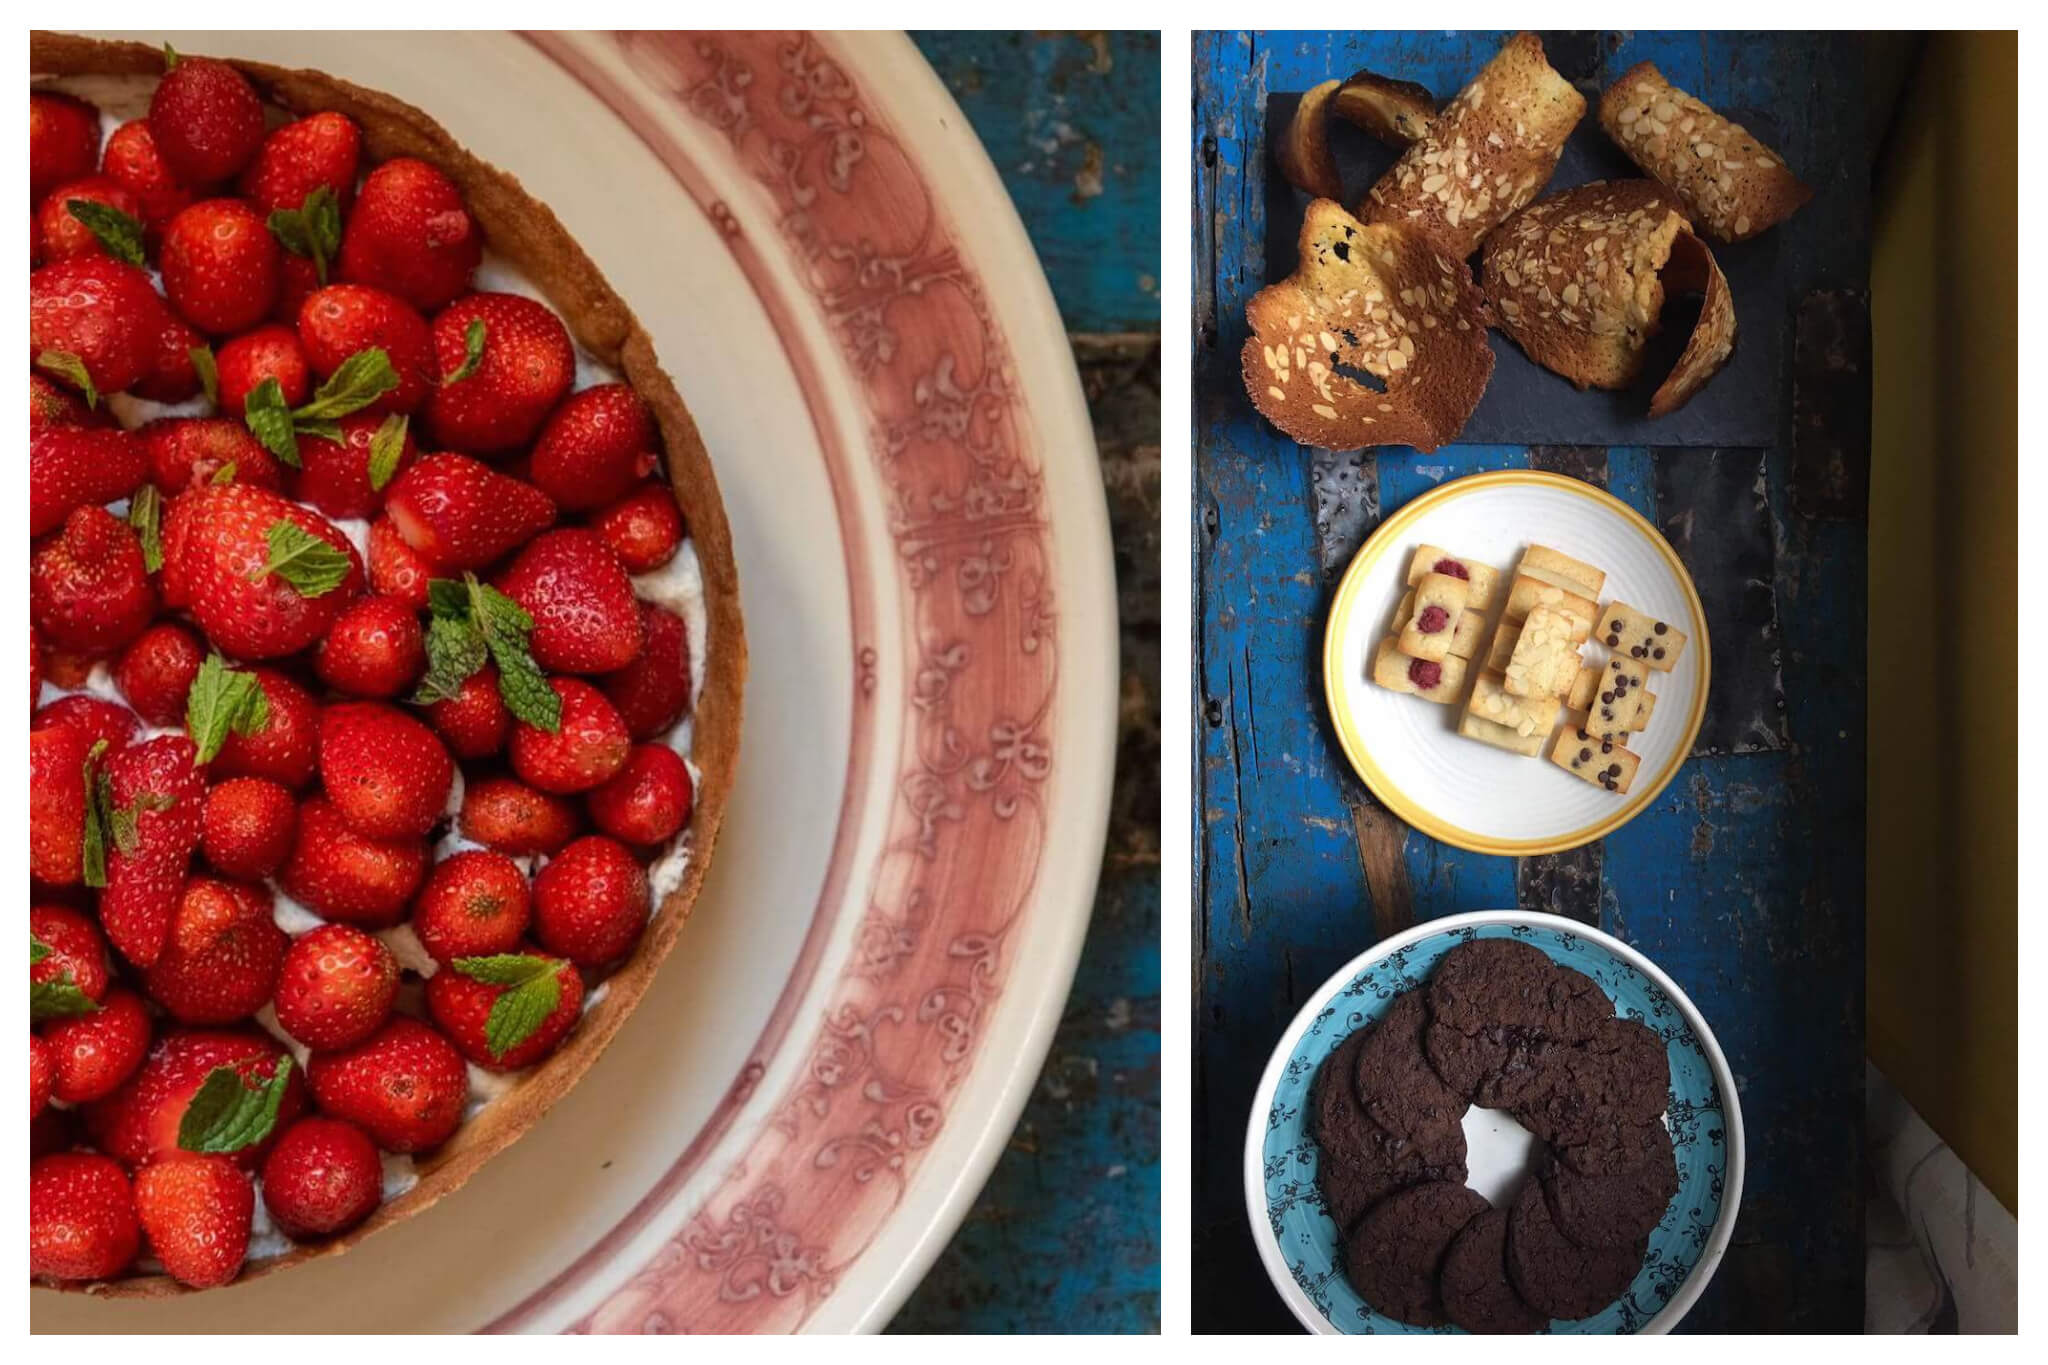 Left: An overhead shot of a bright red strawberry tart sitting atop a large white and red plate, Right: An overhead shot of various desserts and pastries, including chocolte cookies and almond pastries.